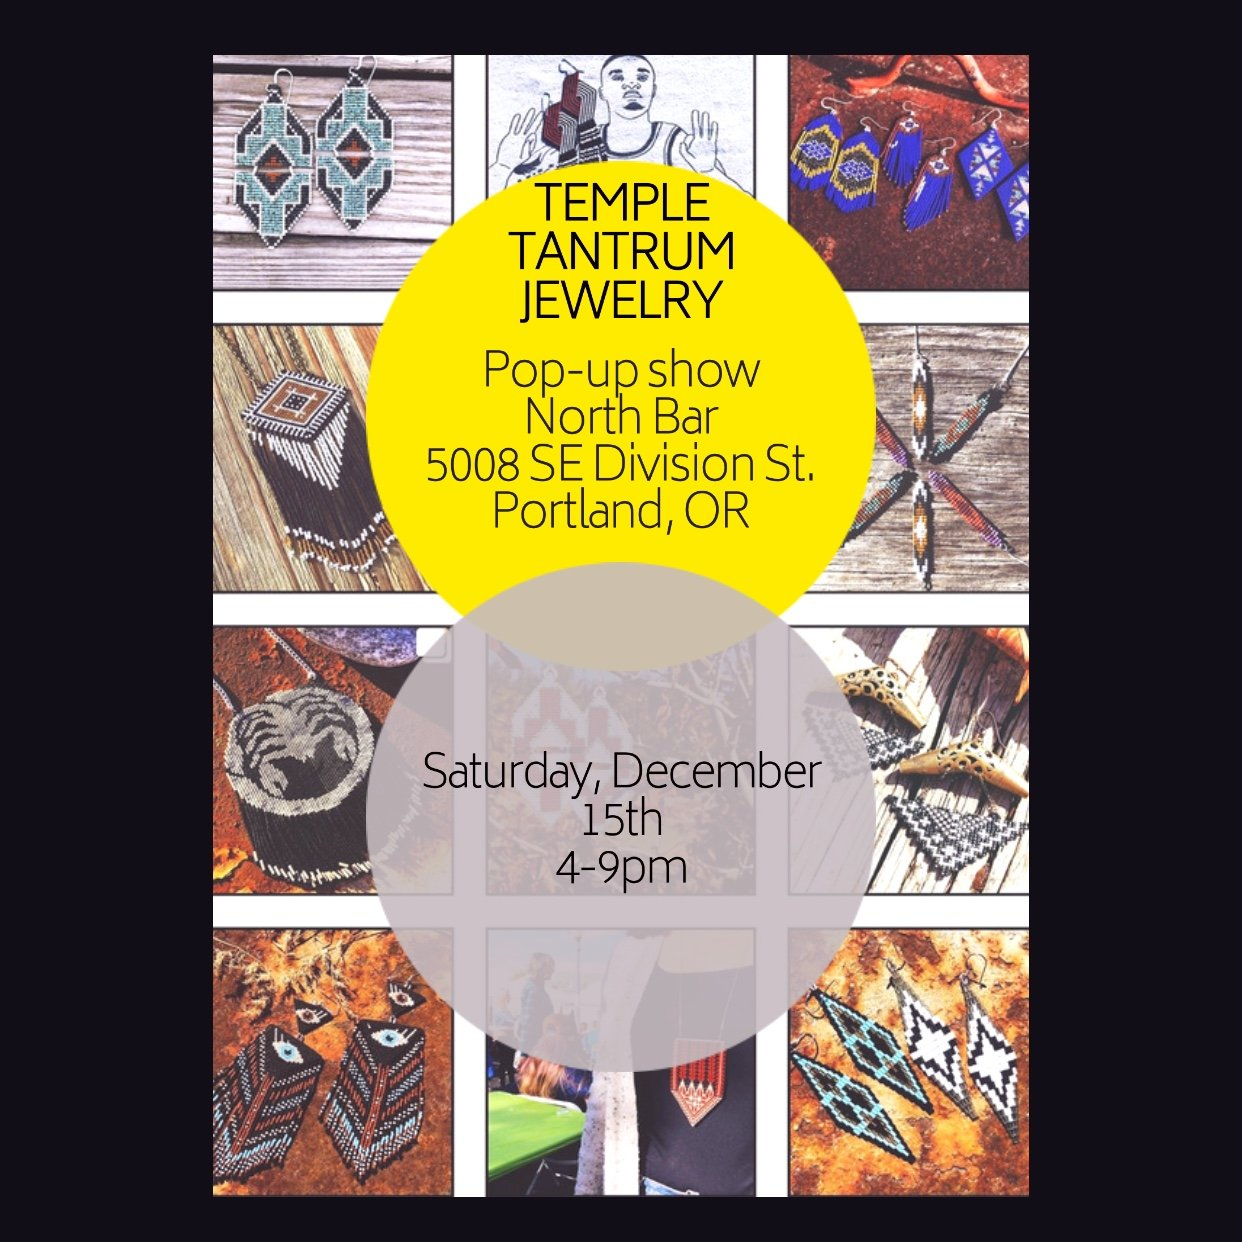 Temple Tantrum Jewelry Pop-up Shop @ North Bar | 2018 Holiday ...